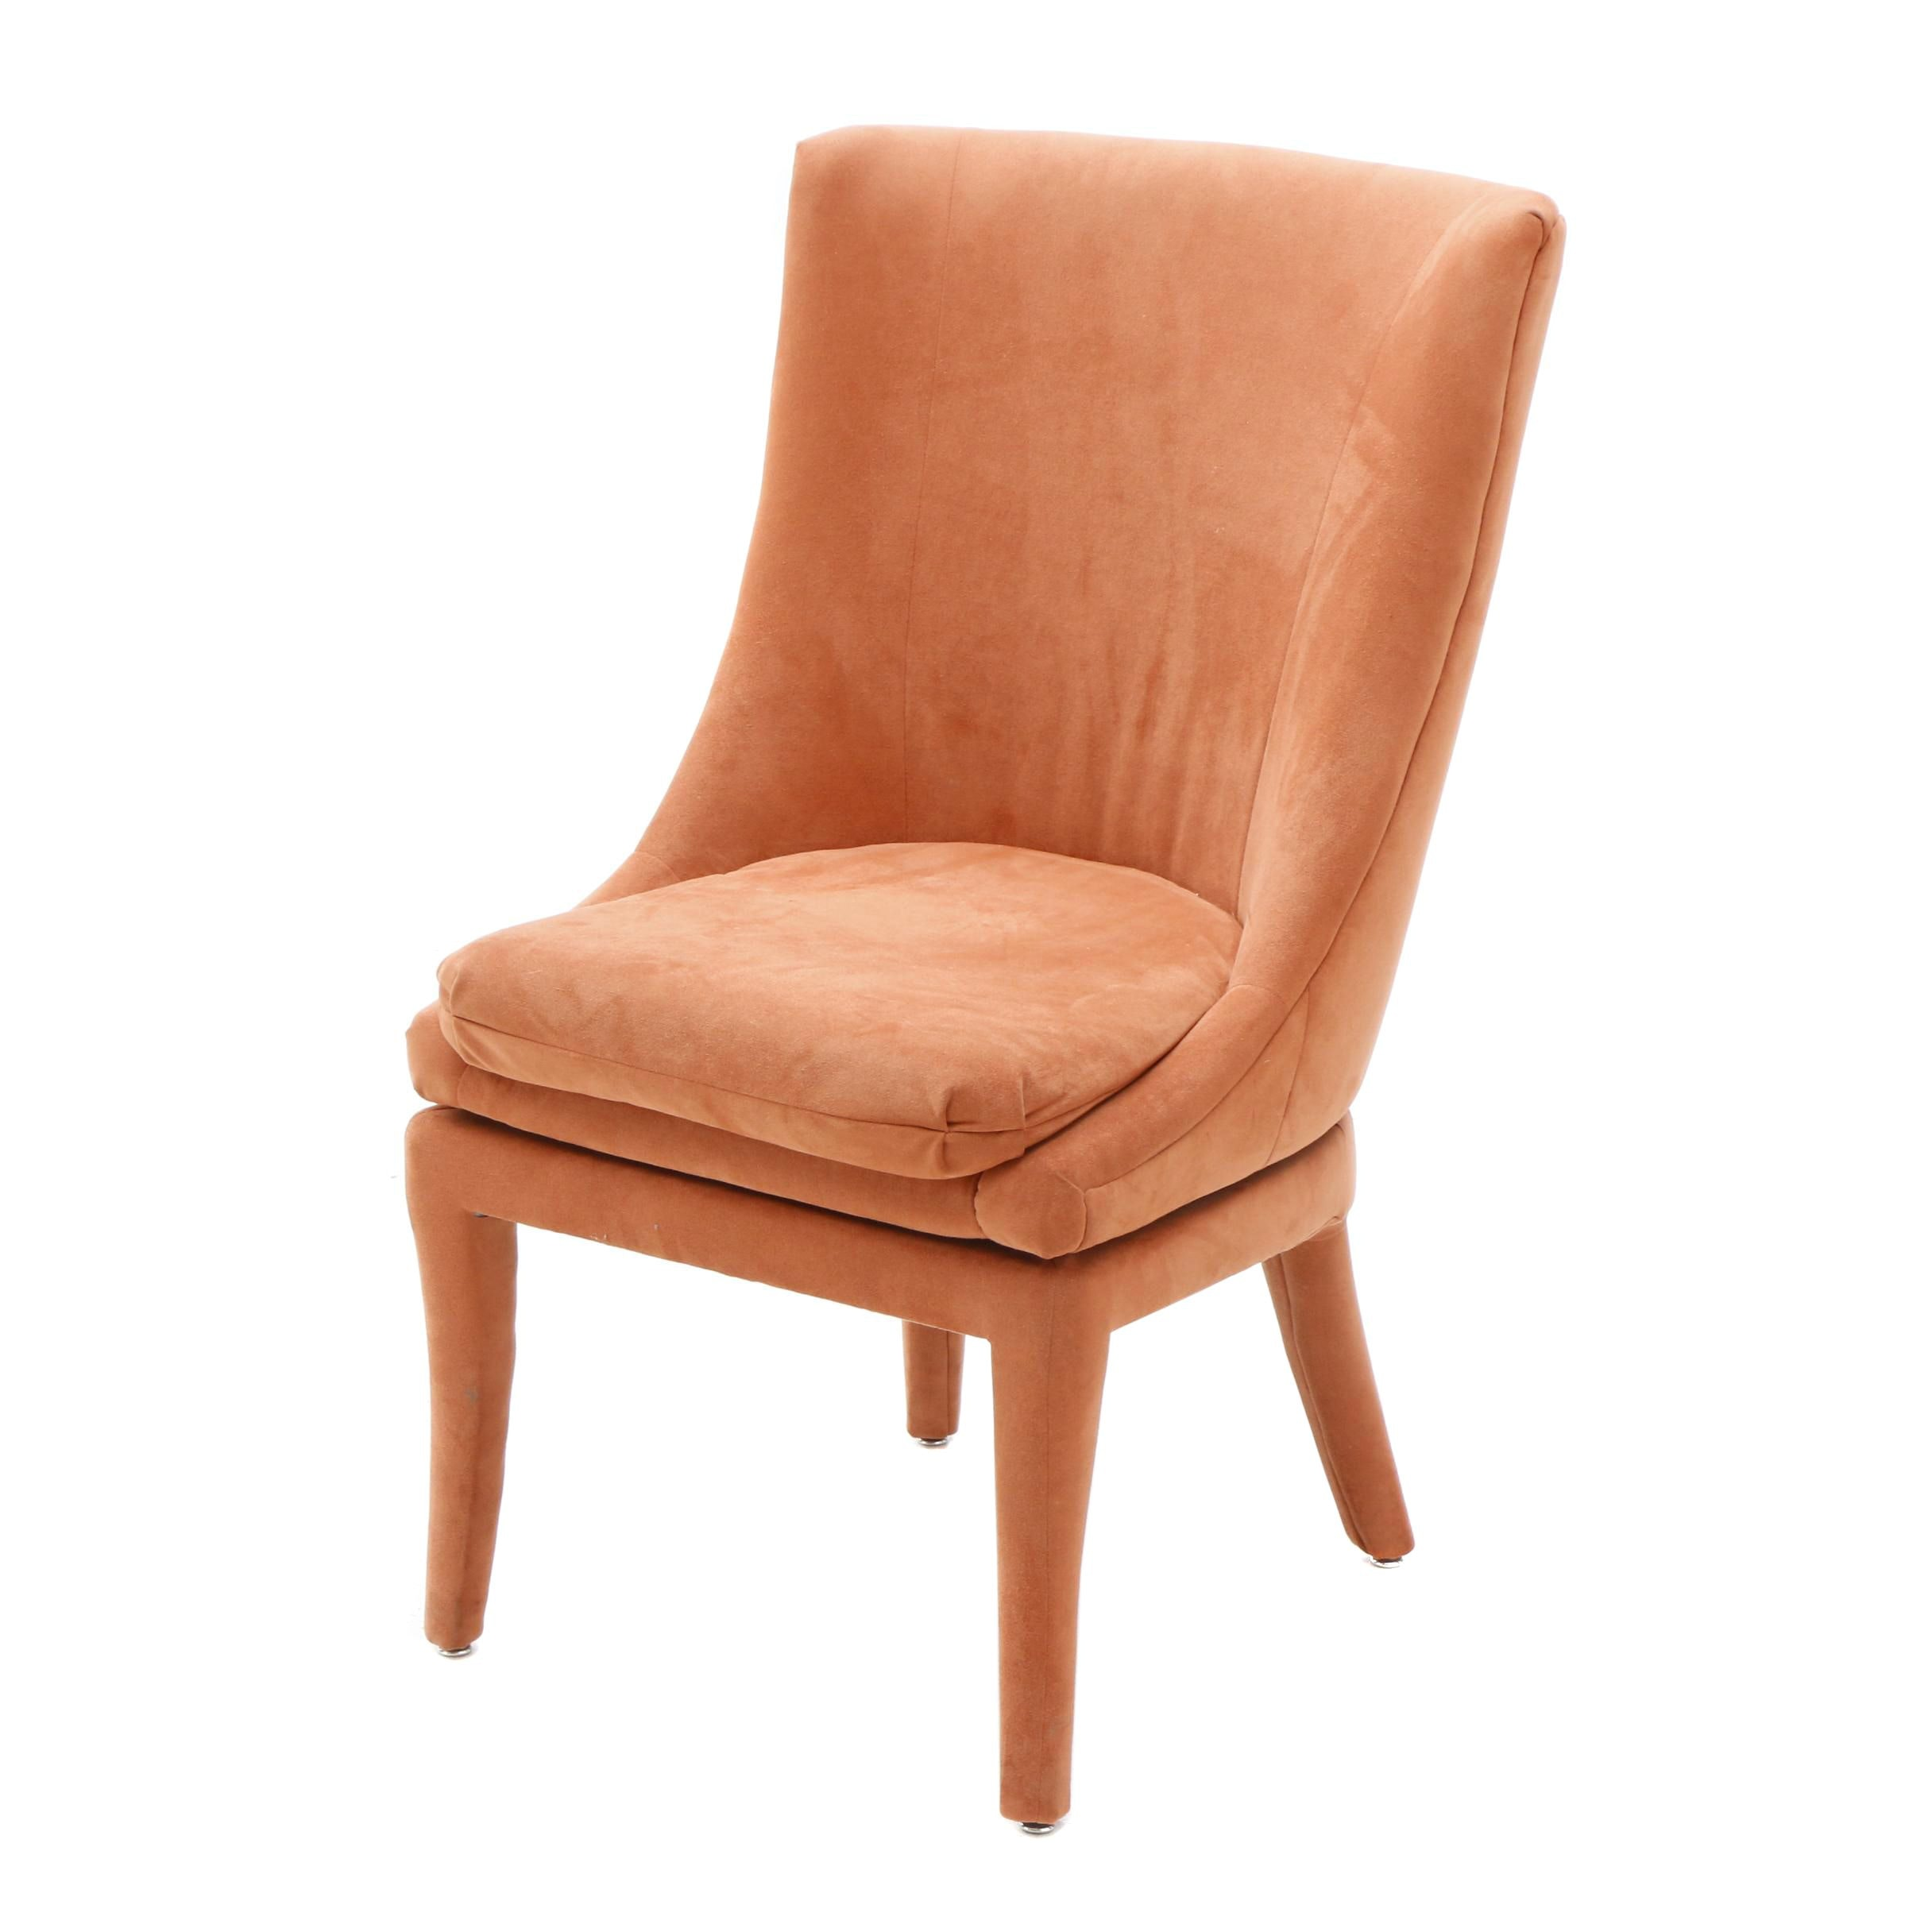 Orange Upholstered Swivel Chair